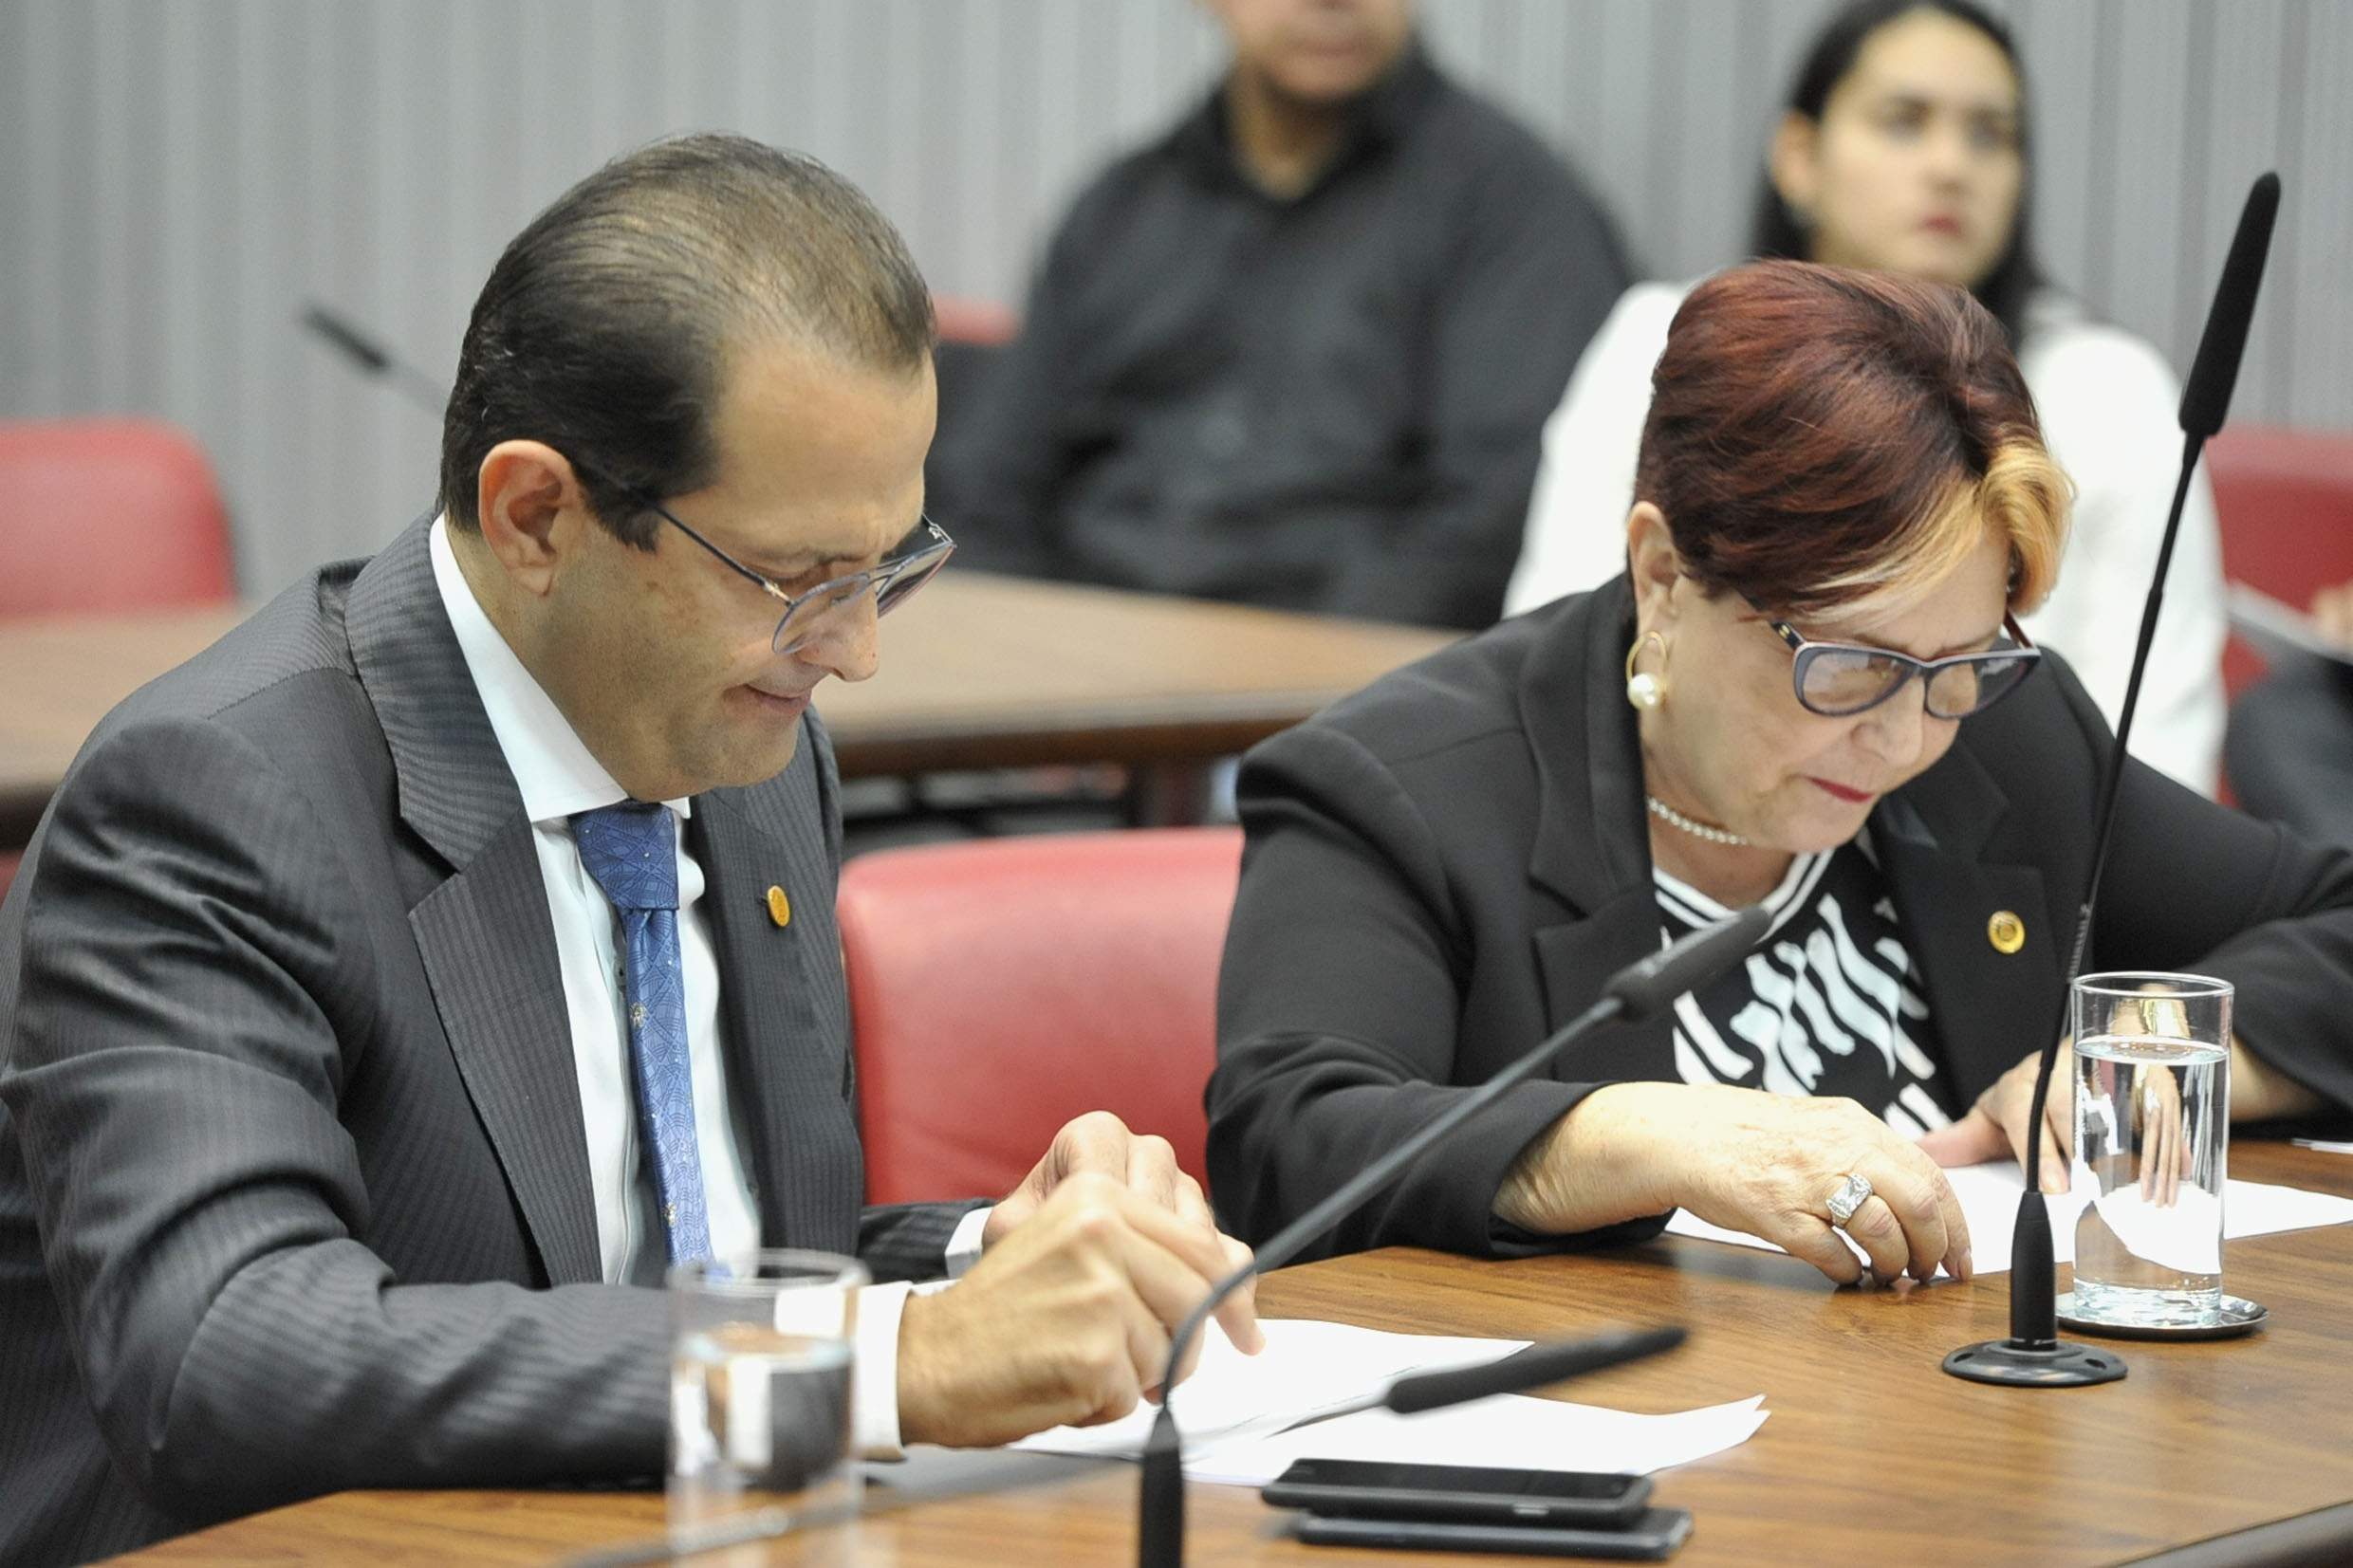 Parlamentares na comissão<a style='float:right' href='https://www3.al.sp.gov.br/repositorio/noticia/N-05-2019/fg234441.jpg' target=_blank><img src='/_img/material-file-download-white.png' width='14px' alt='Clique para baixar a imagem'></a>